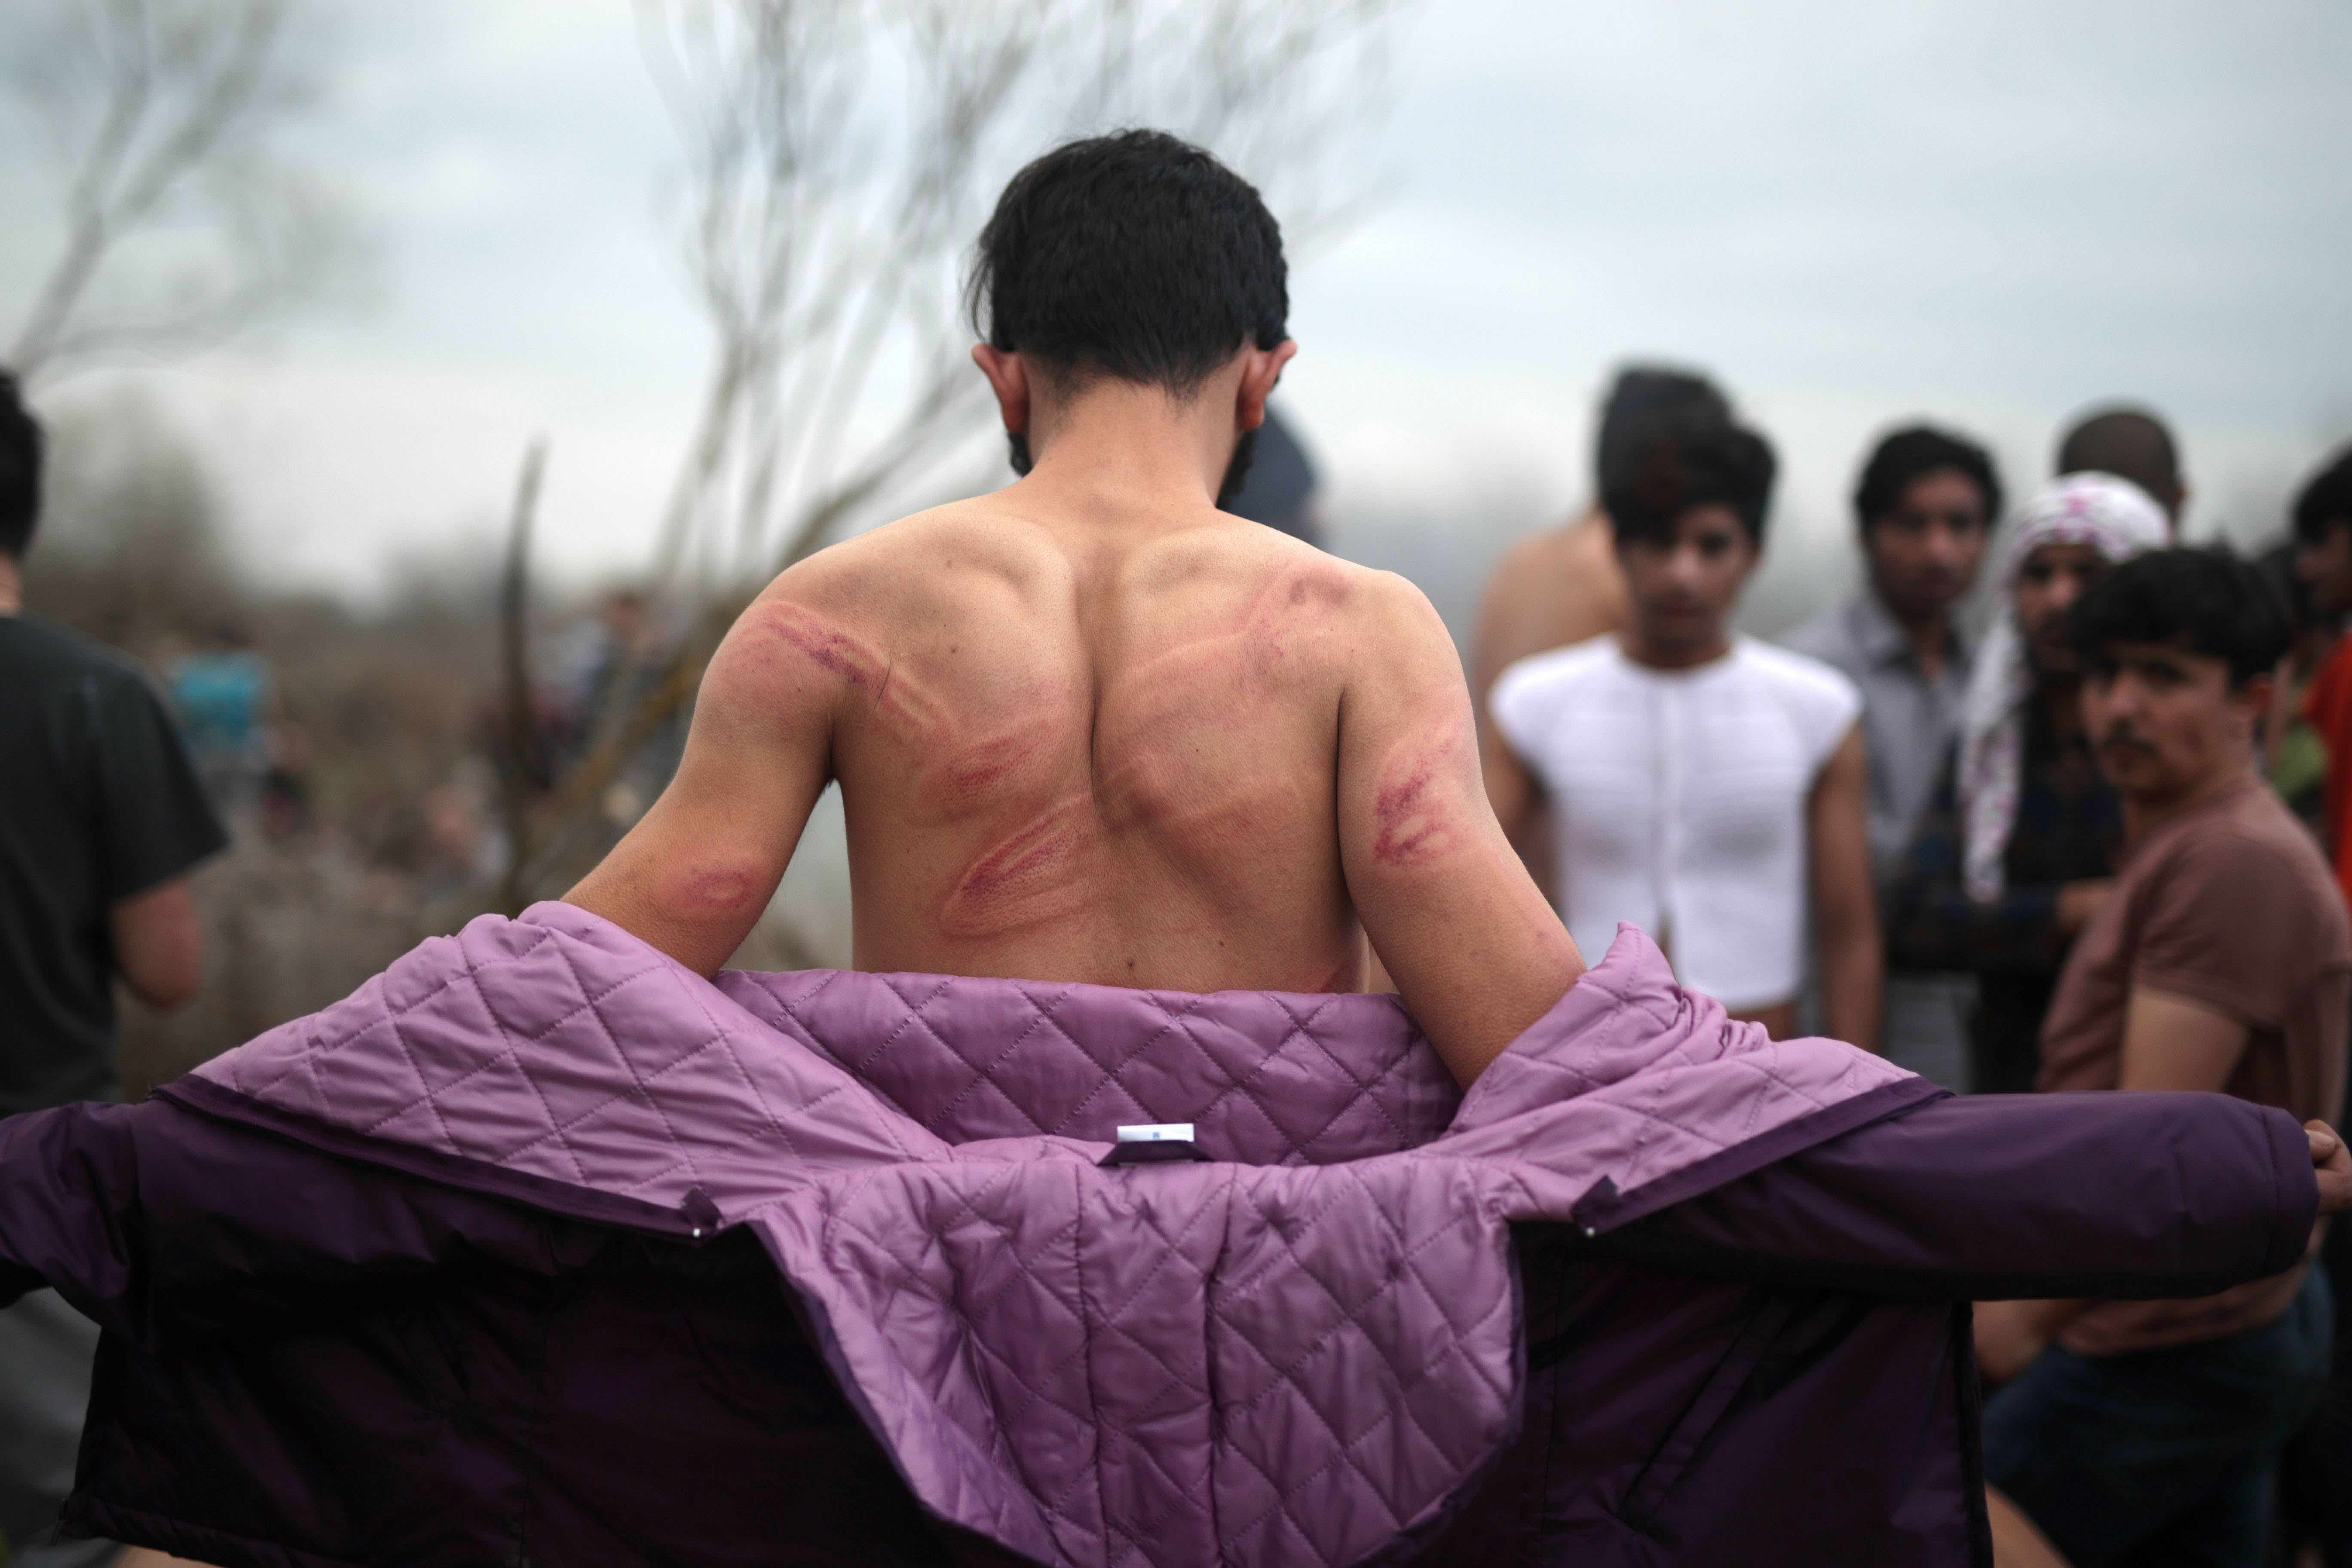 An asylum seeker in northern Turkey at the Greek border on March 6 shows injuries he says Greek security forces inflicted after he had crossed the Evros River into Greece. Photo by Turkish Radio and Television Corporation/Handout/Anadolu Agency.